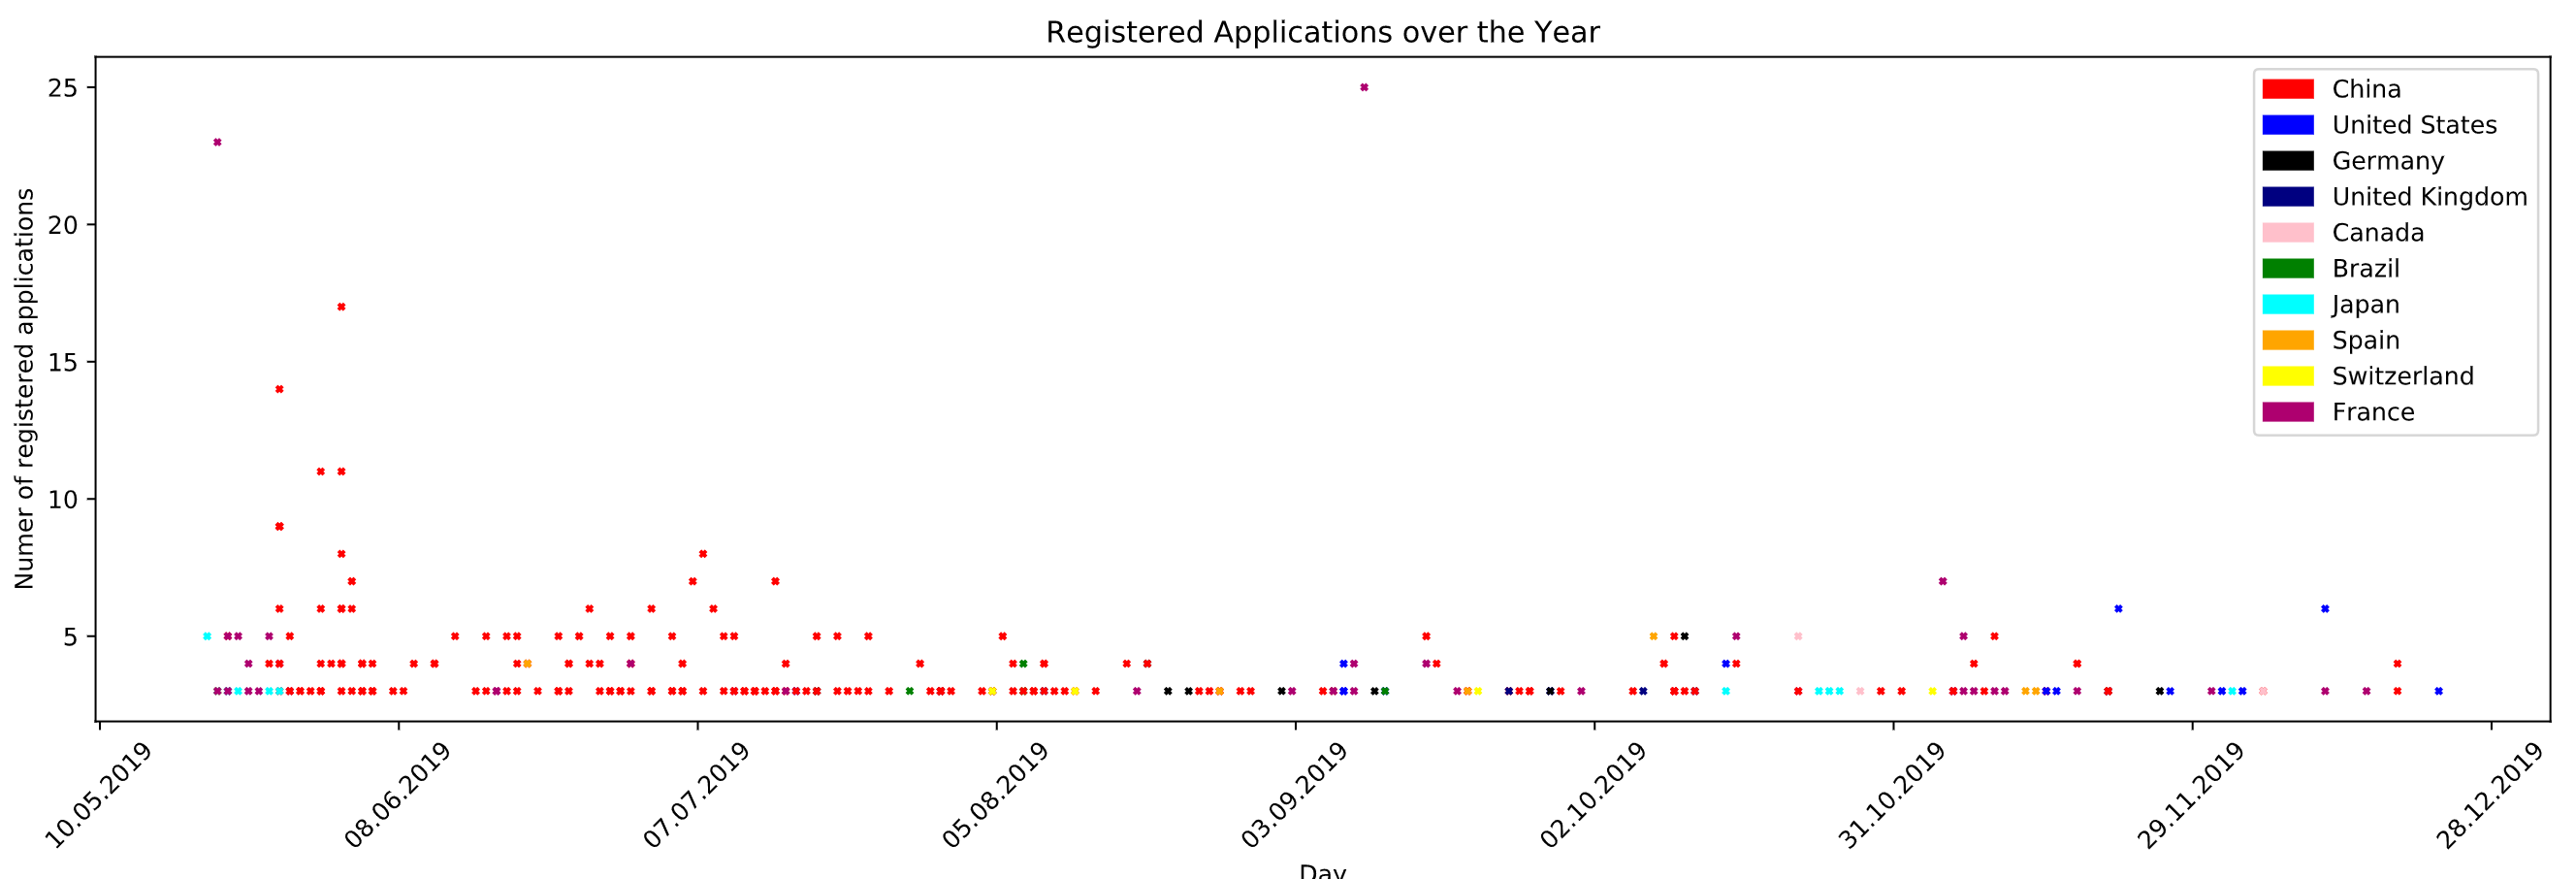 Applications by City, Country and Date